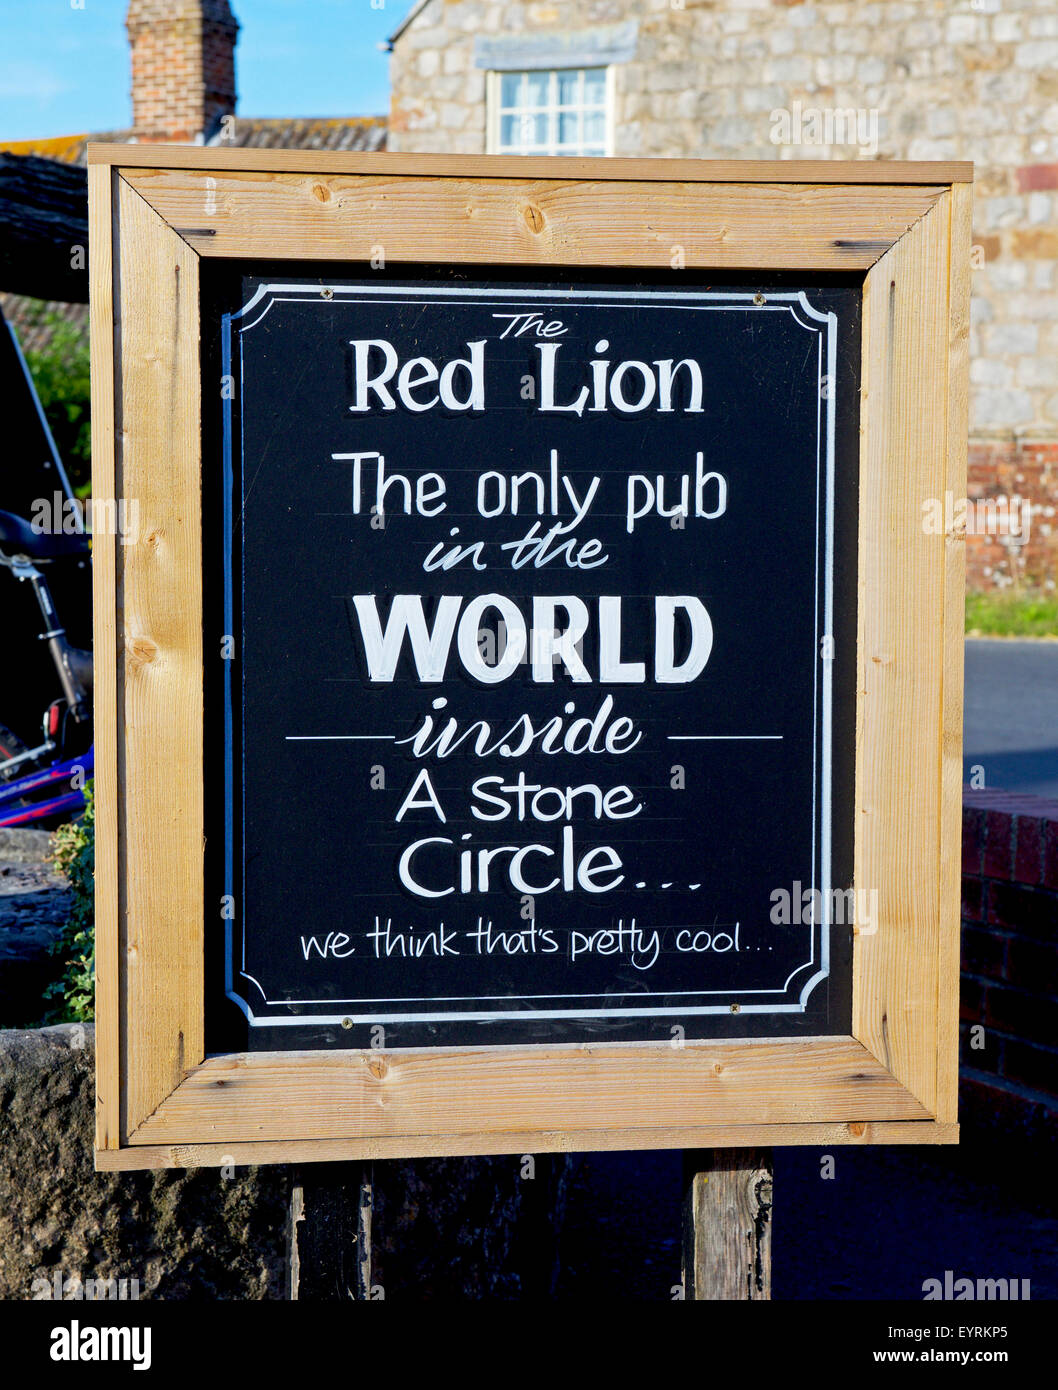 Sign, Red Lion pub, Avebury, Wiltshire, England UK, suggesting it's 'cool' to be inside a circle of - Stock Image